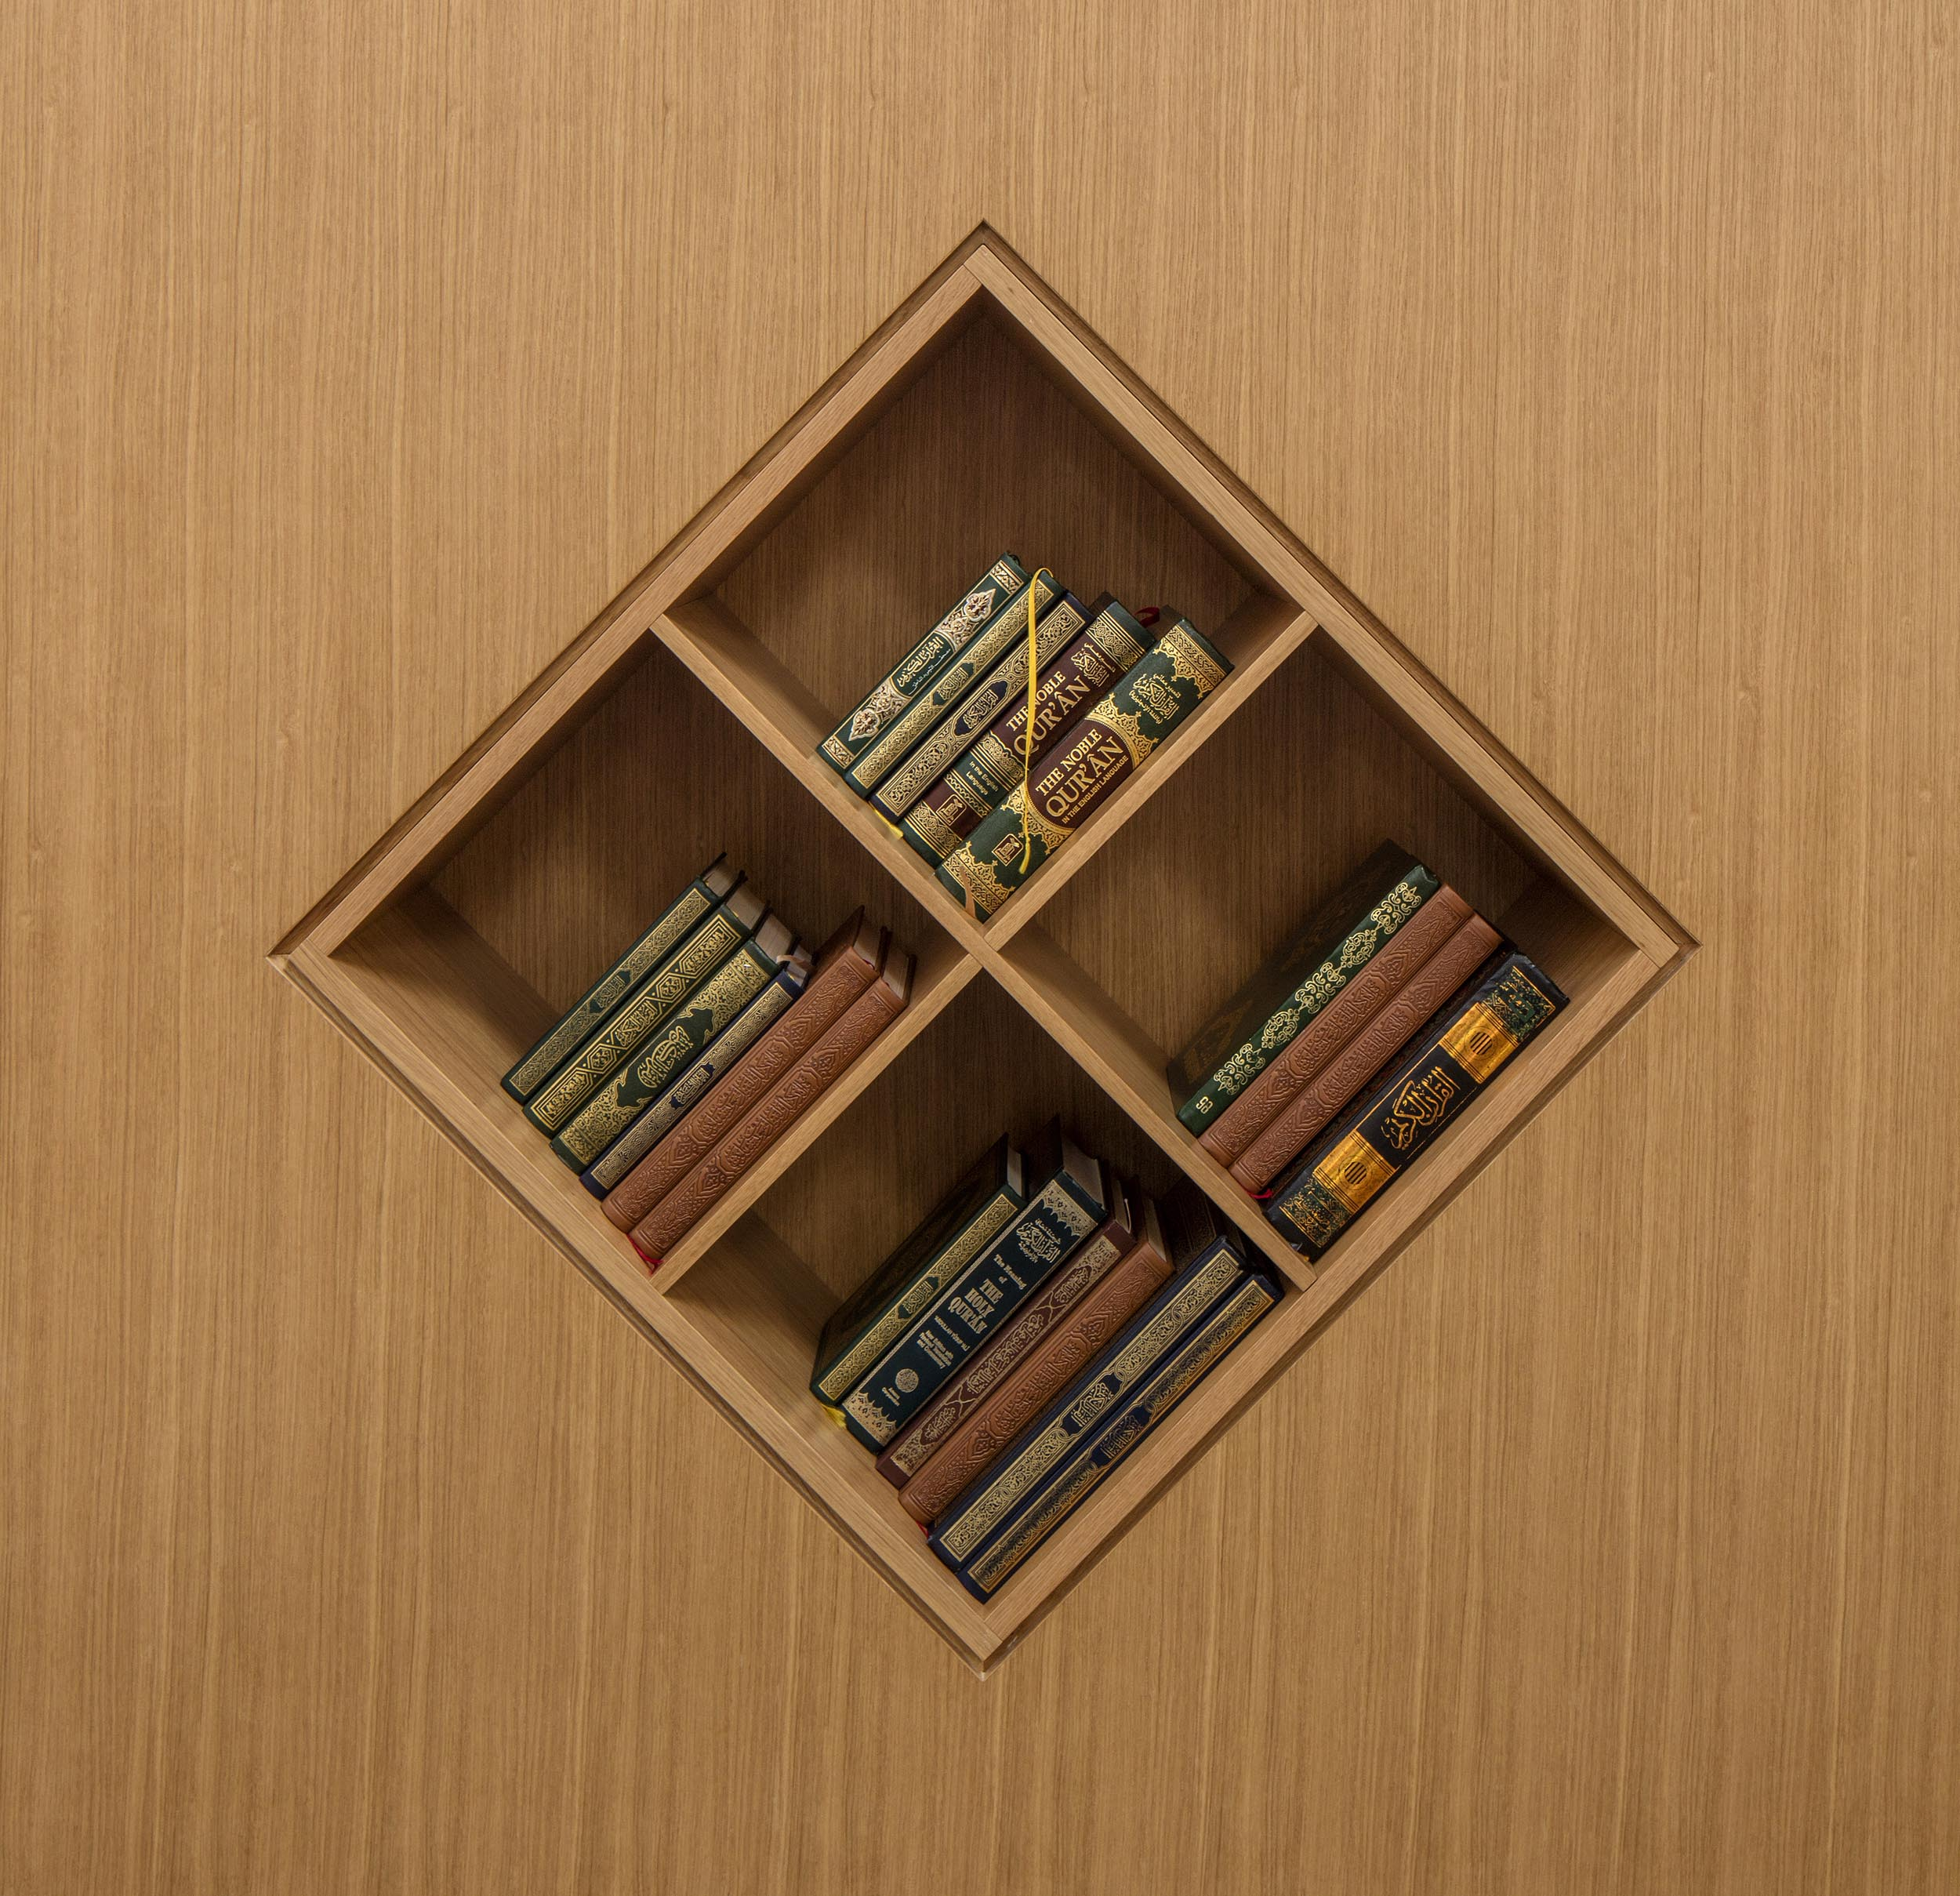 Cambridge Mosque Bookshelf in Prayer Hall by Marks Barfield Architects, photo by Morley von Sternberg